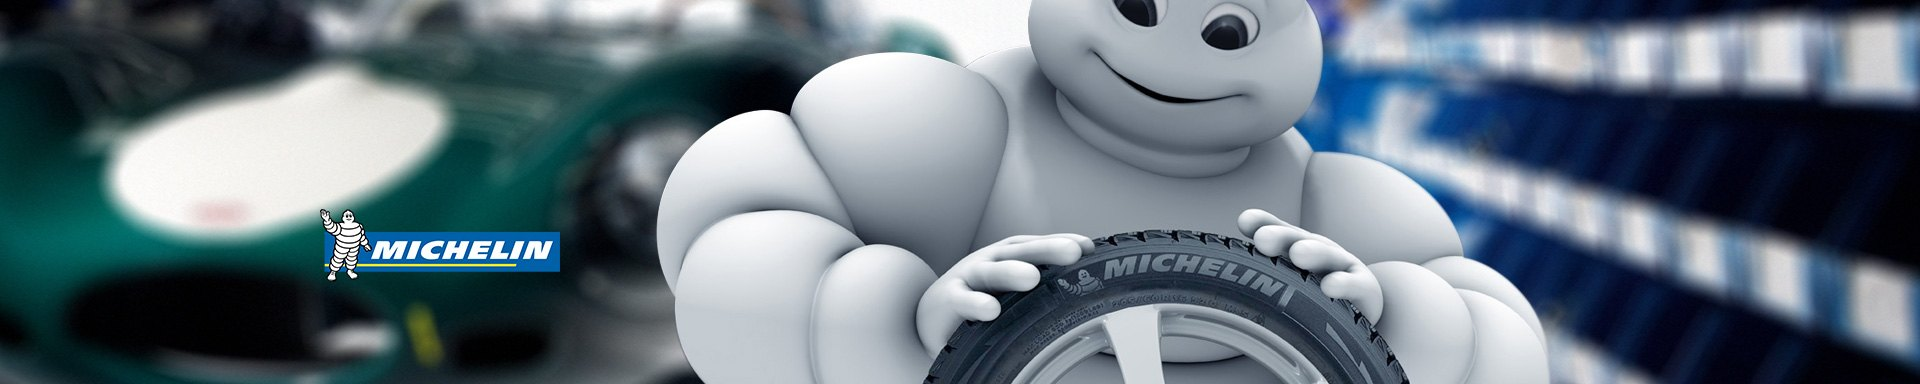 Universal MICHELIN TIRES